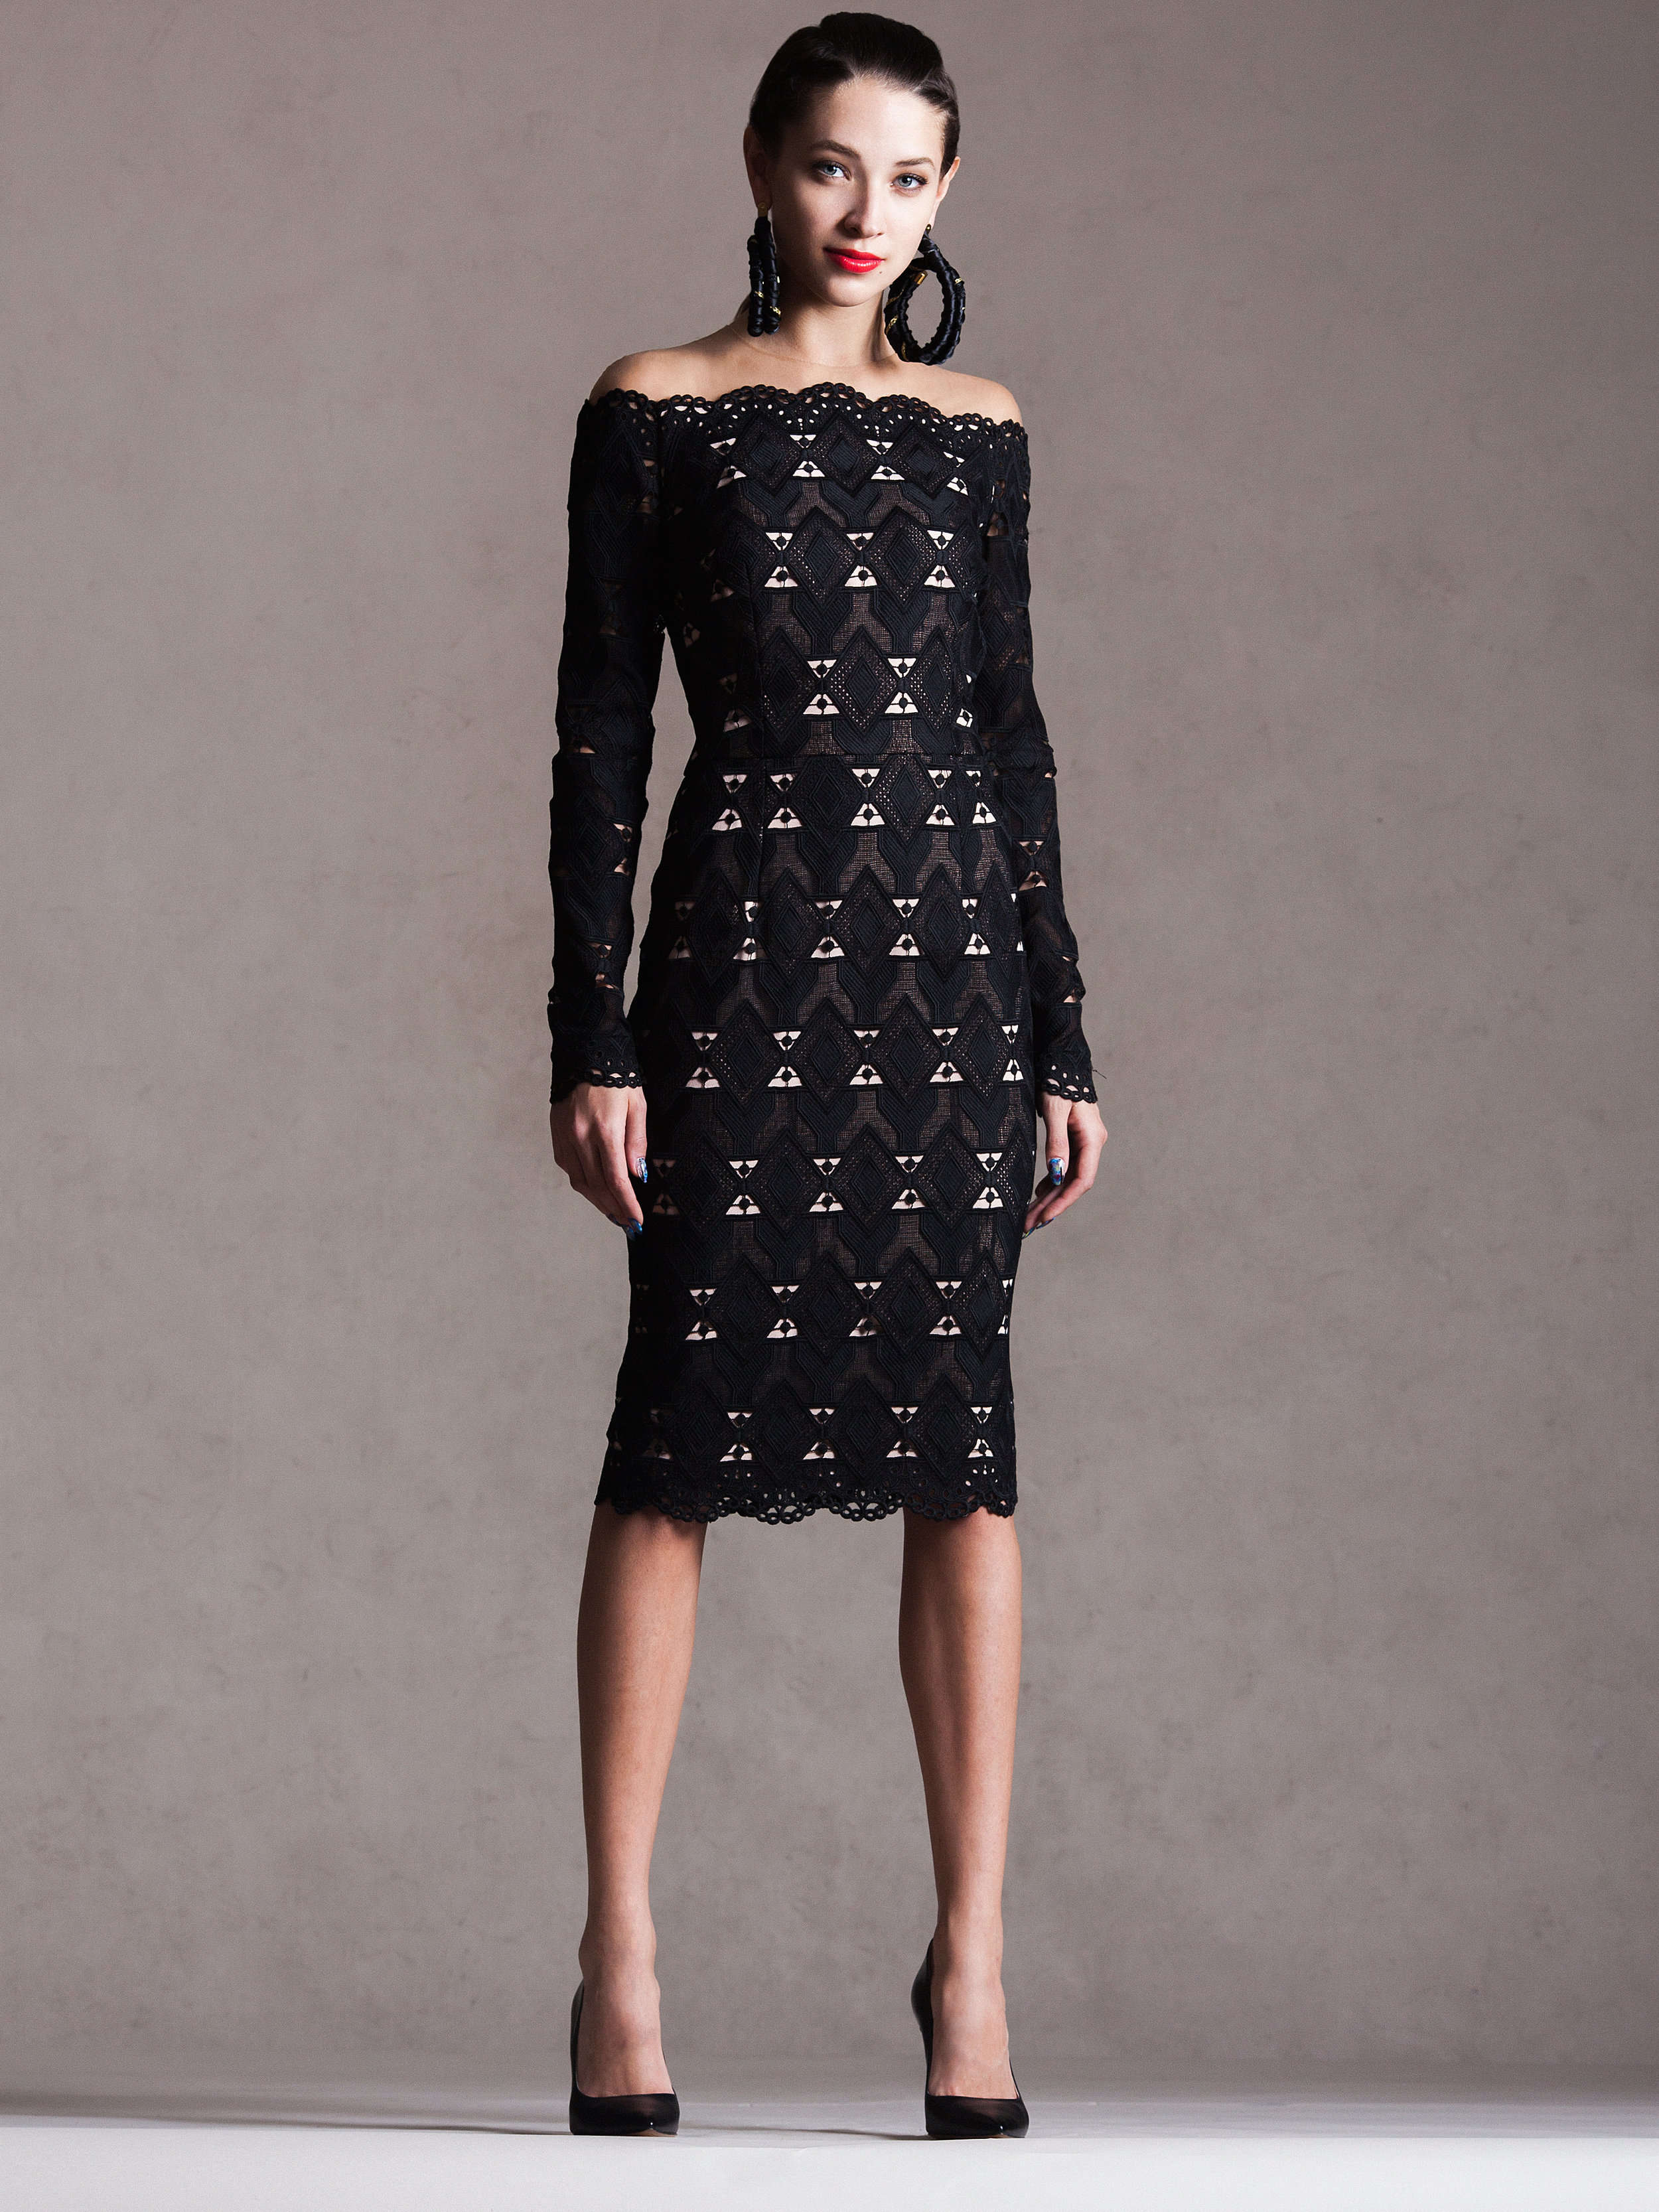 Lucian-Matis-Lookbook-20150204-026c.jpg